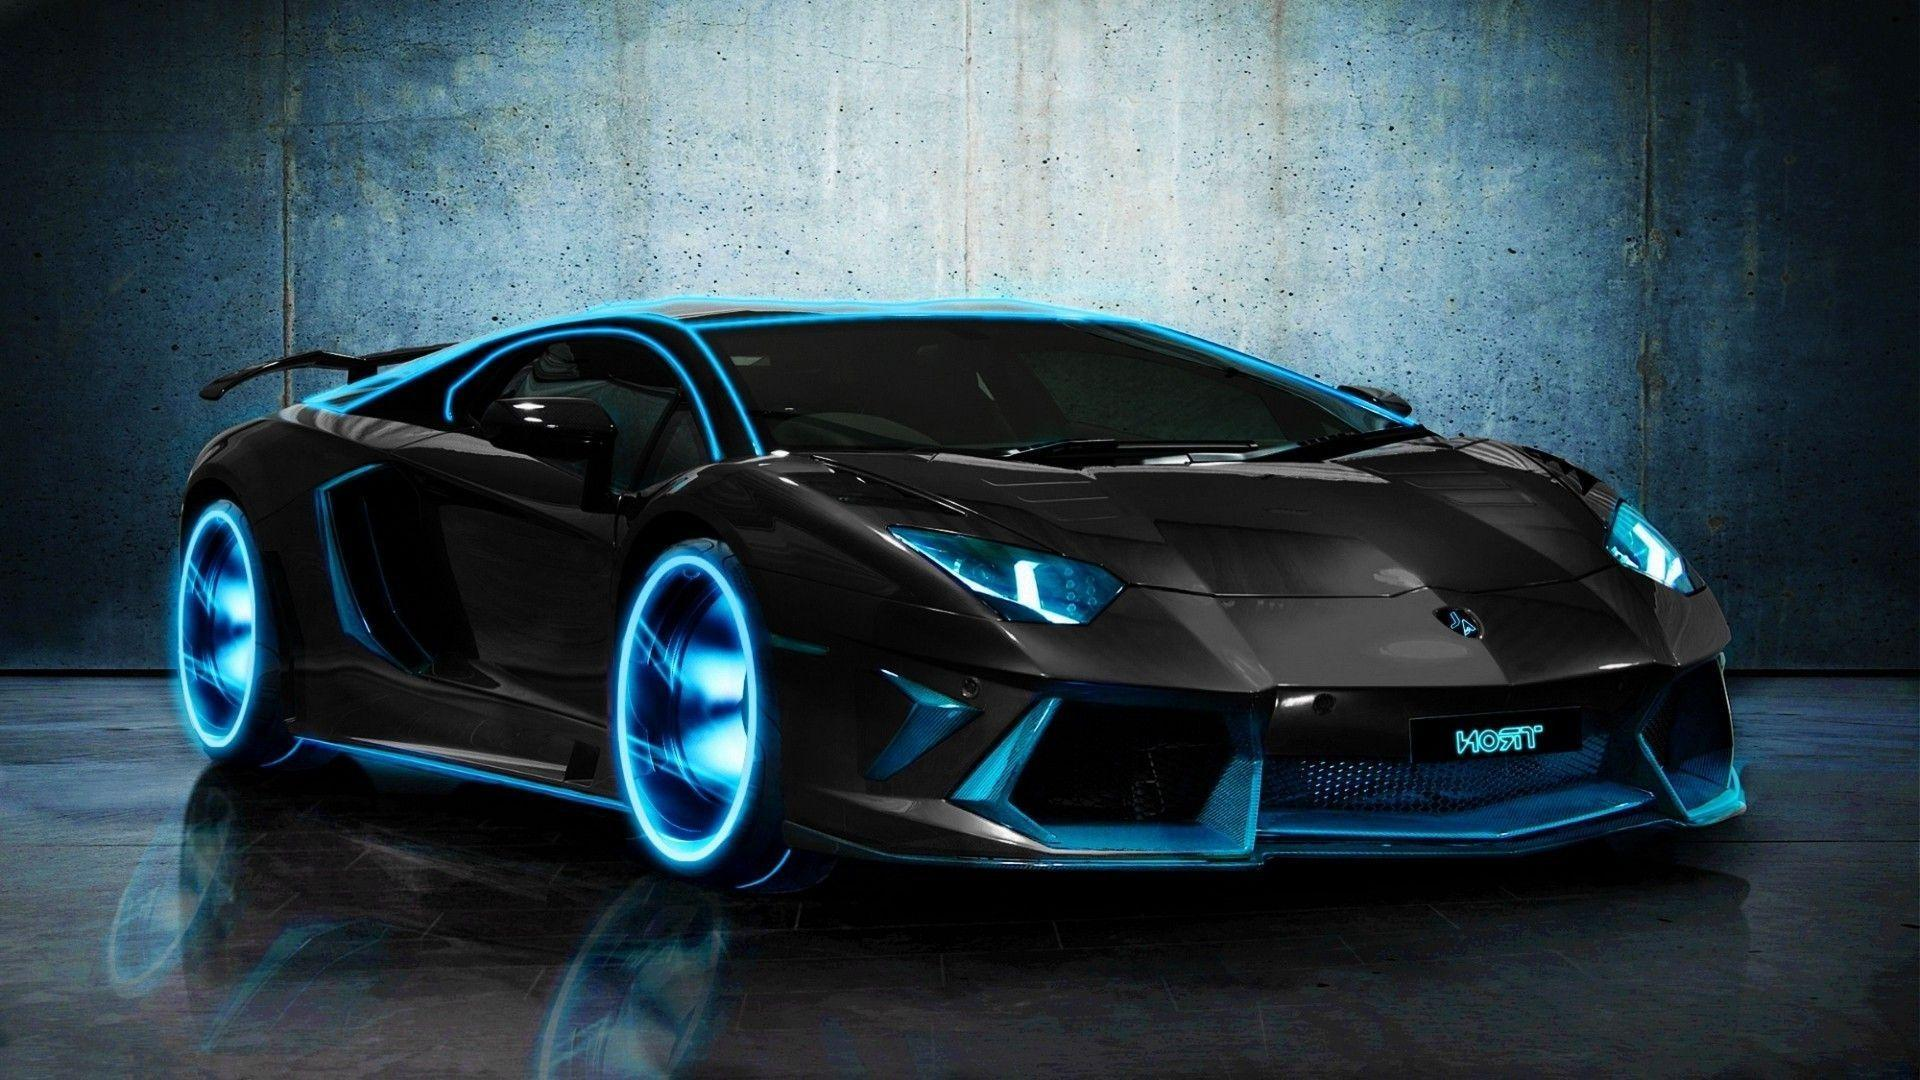 wallpapers of lamborghini car - wallpaper cave